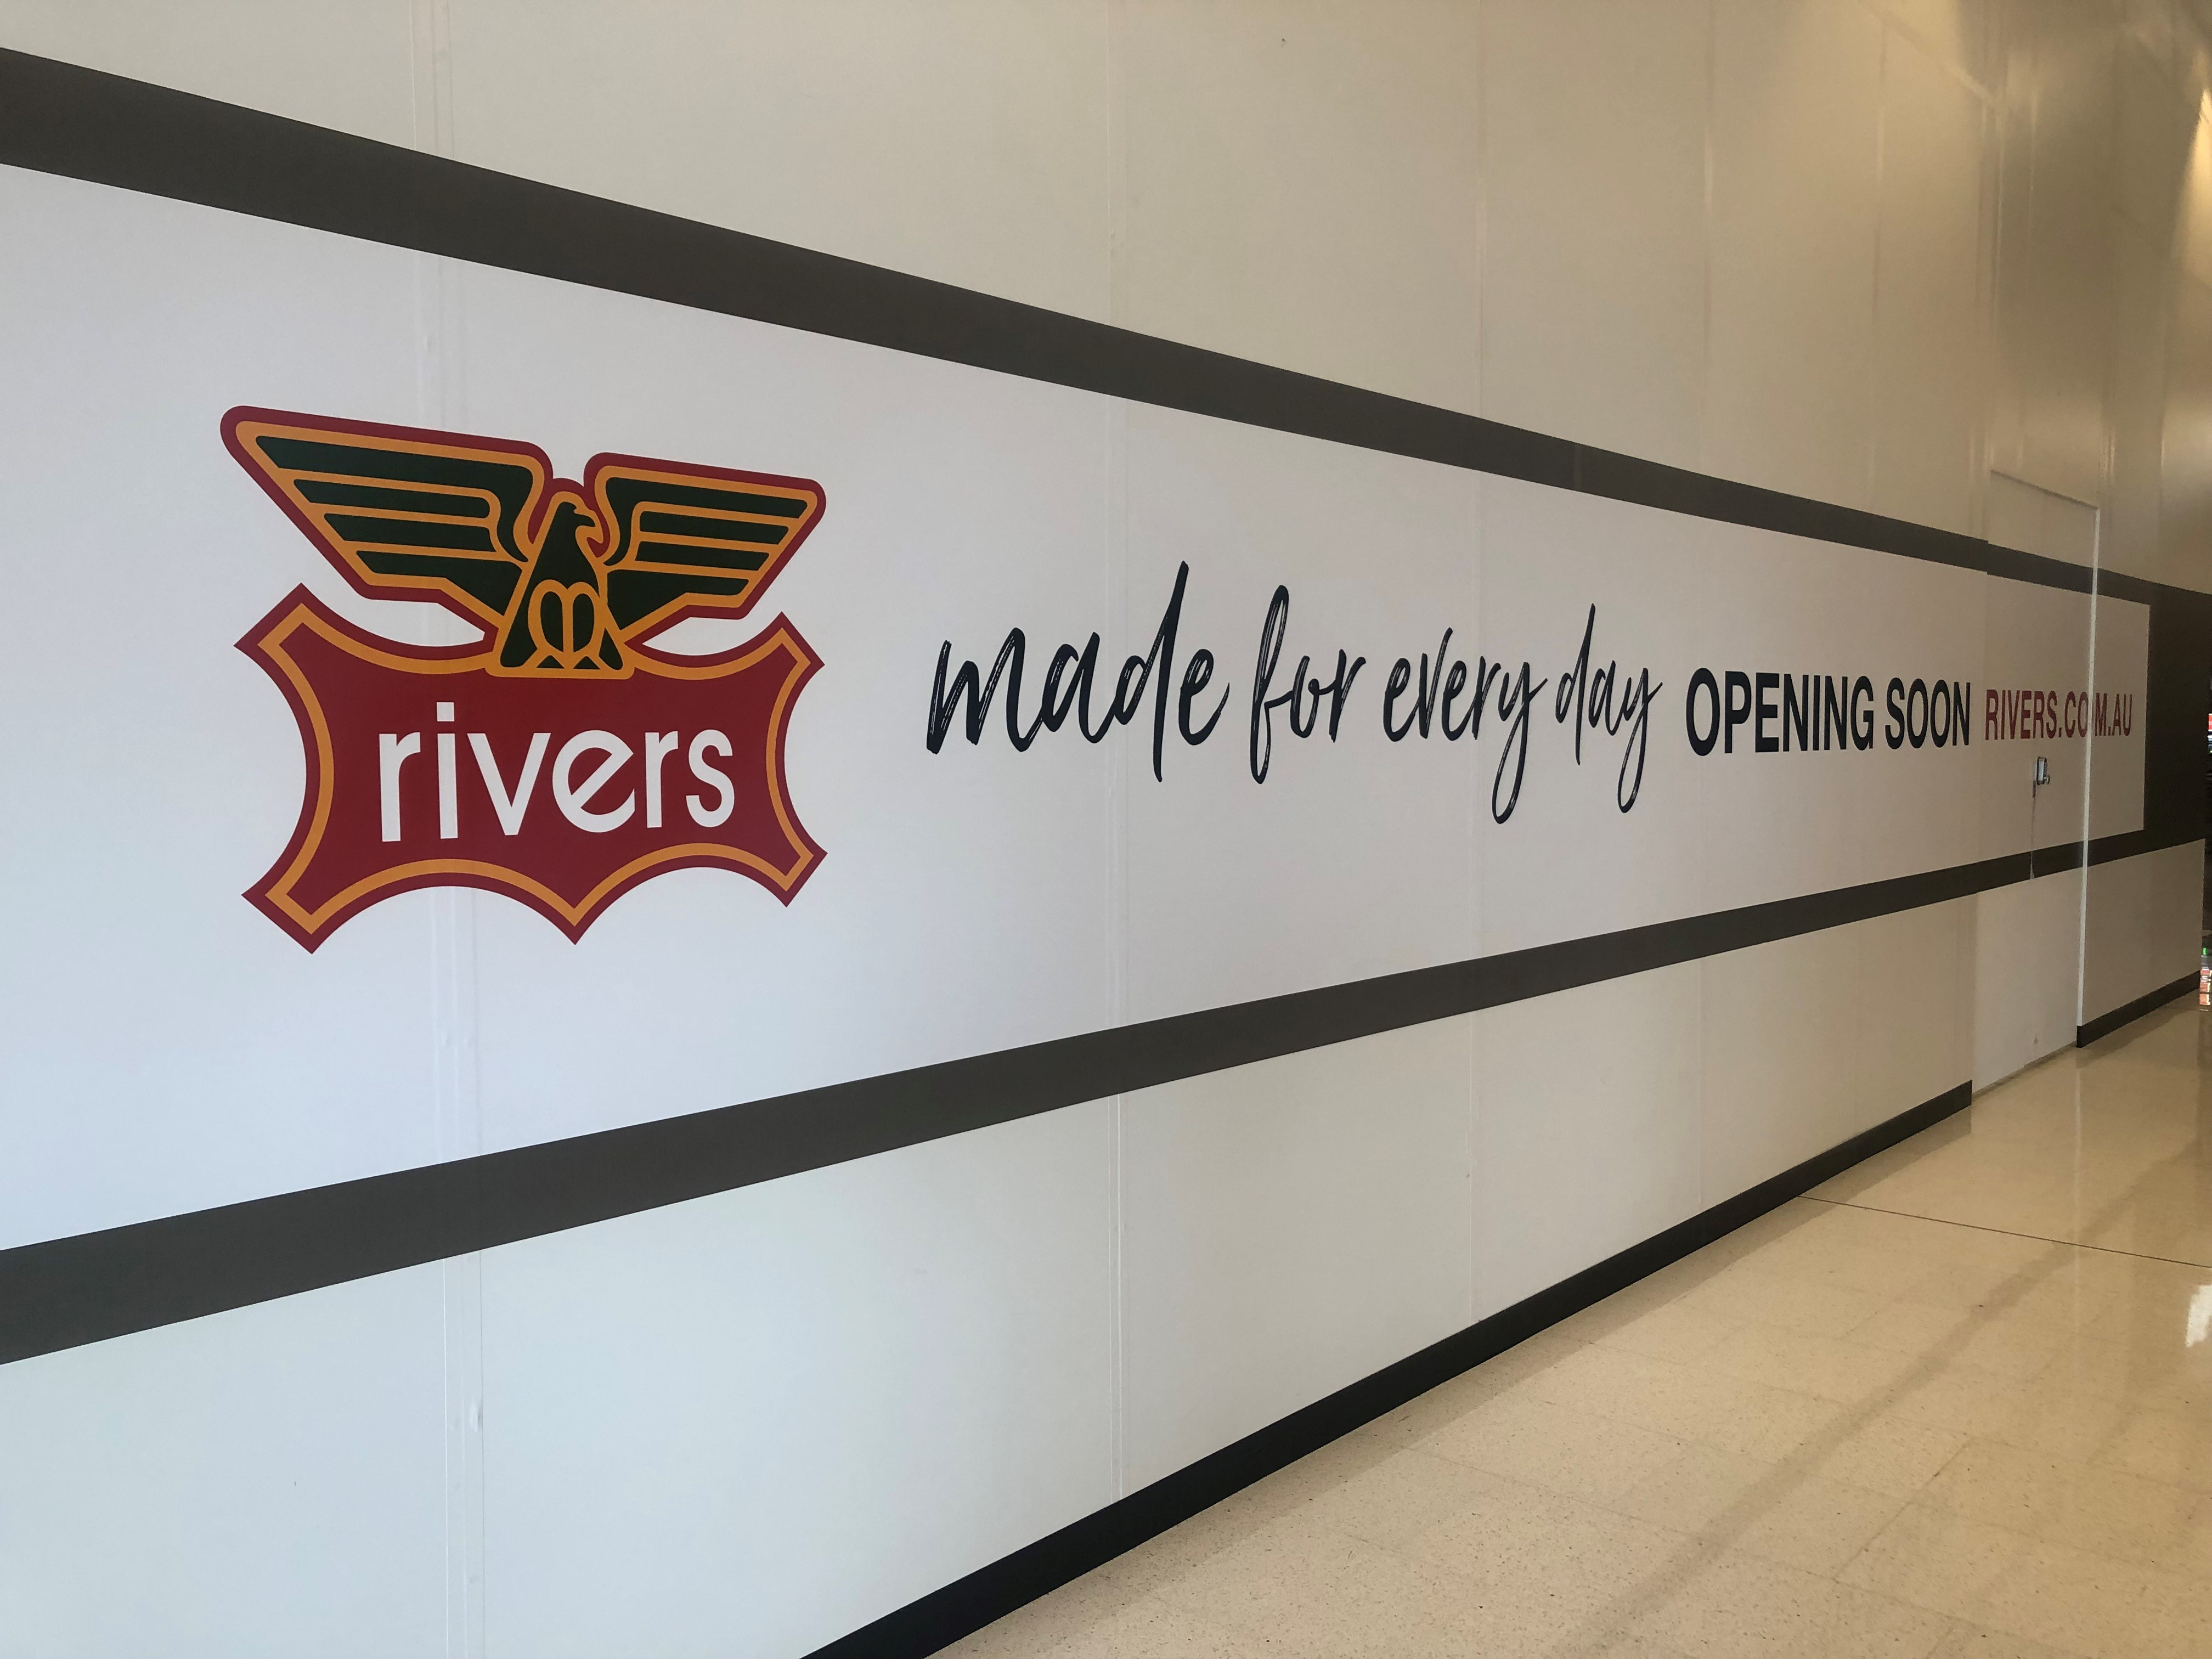 New signage for Rivers at Grand Central.